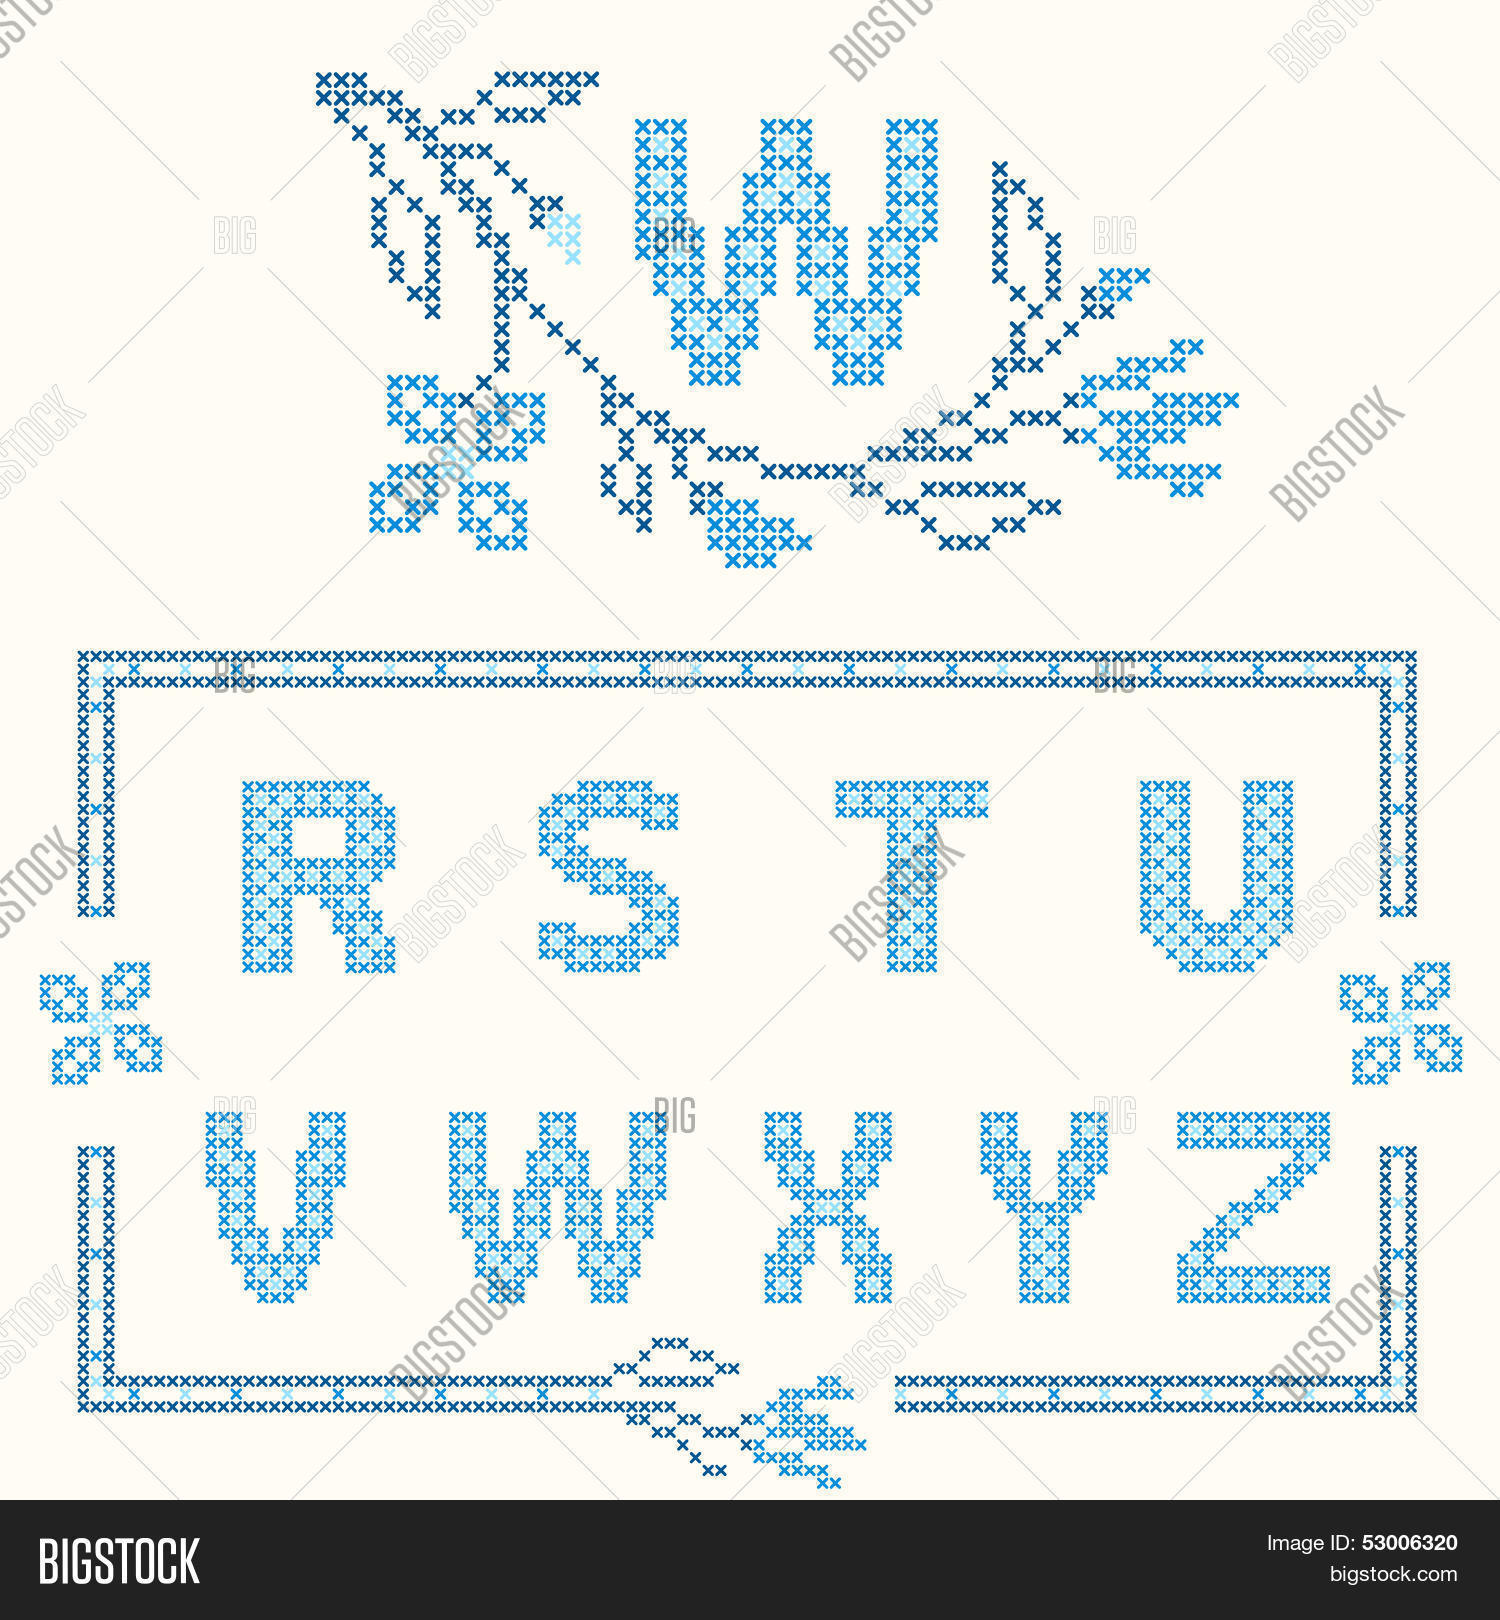 9766f78e788 Design elements for cross-stitch embroidery. Blue colors vector  illustration. Floral branch and one letter. Letters R-Z.